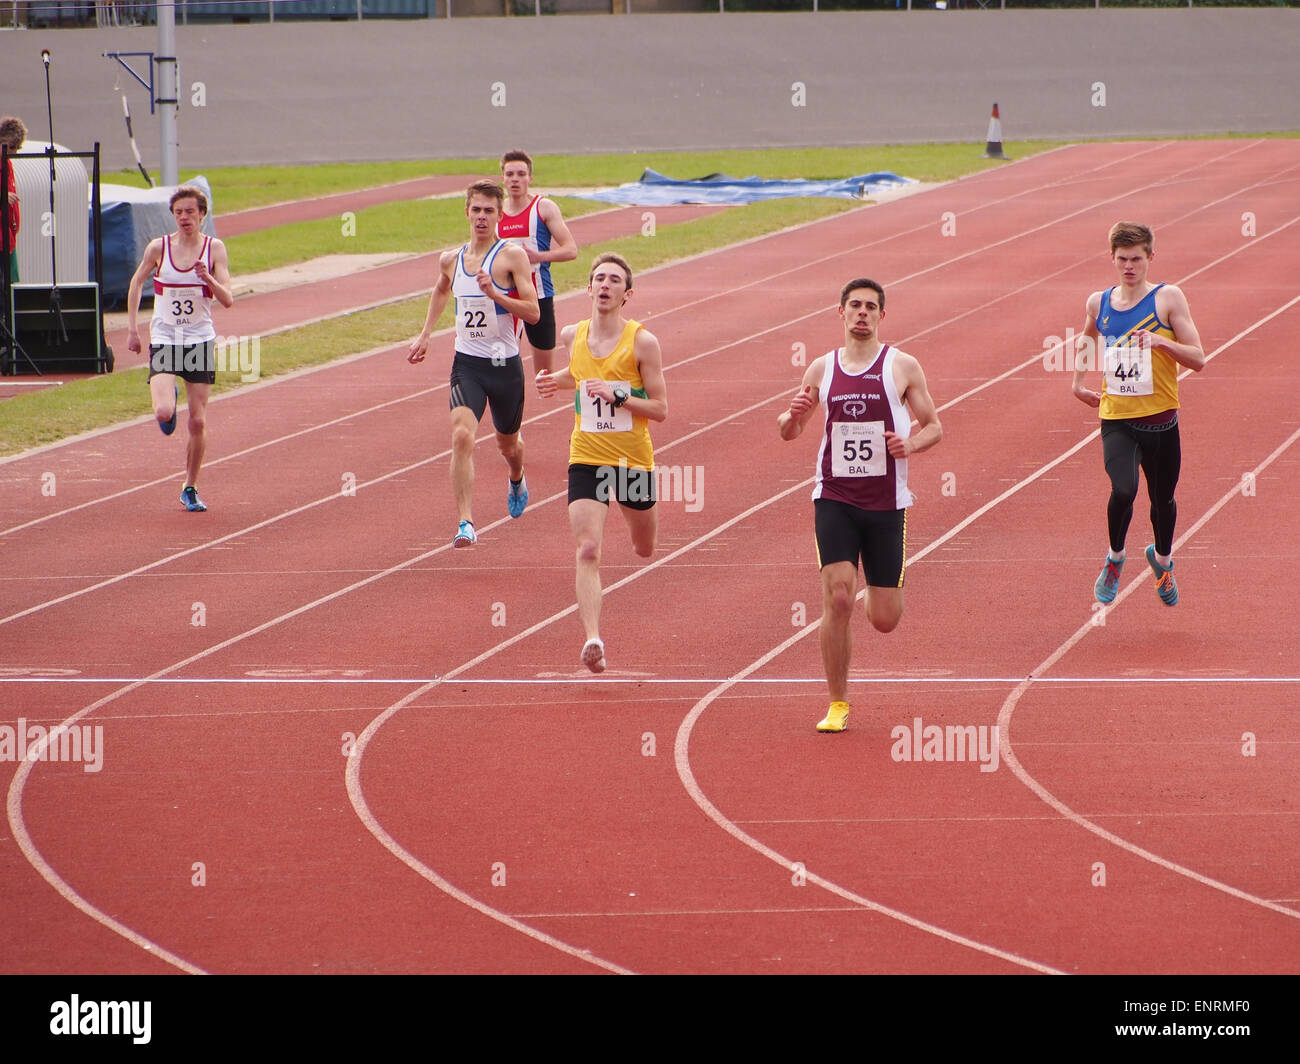 Sprinters cross the finish line of a running track - Stock Image